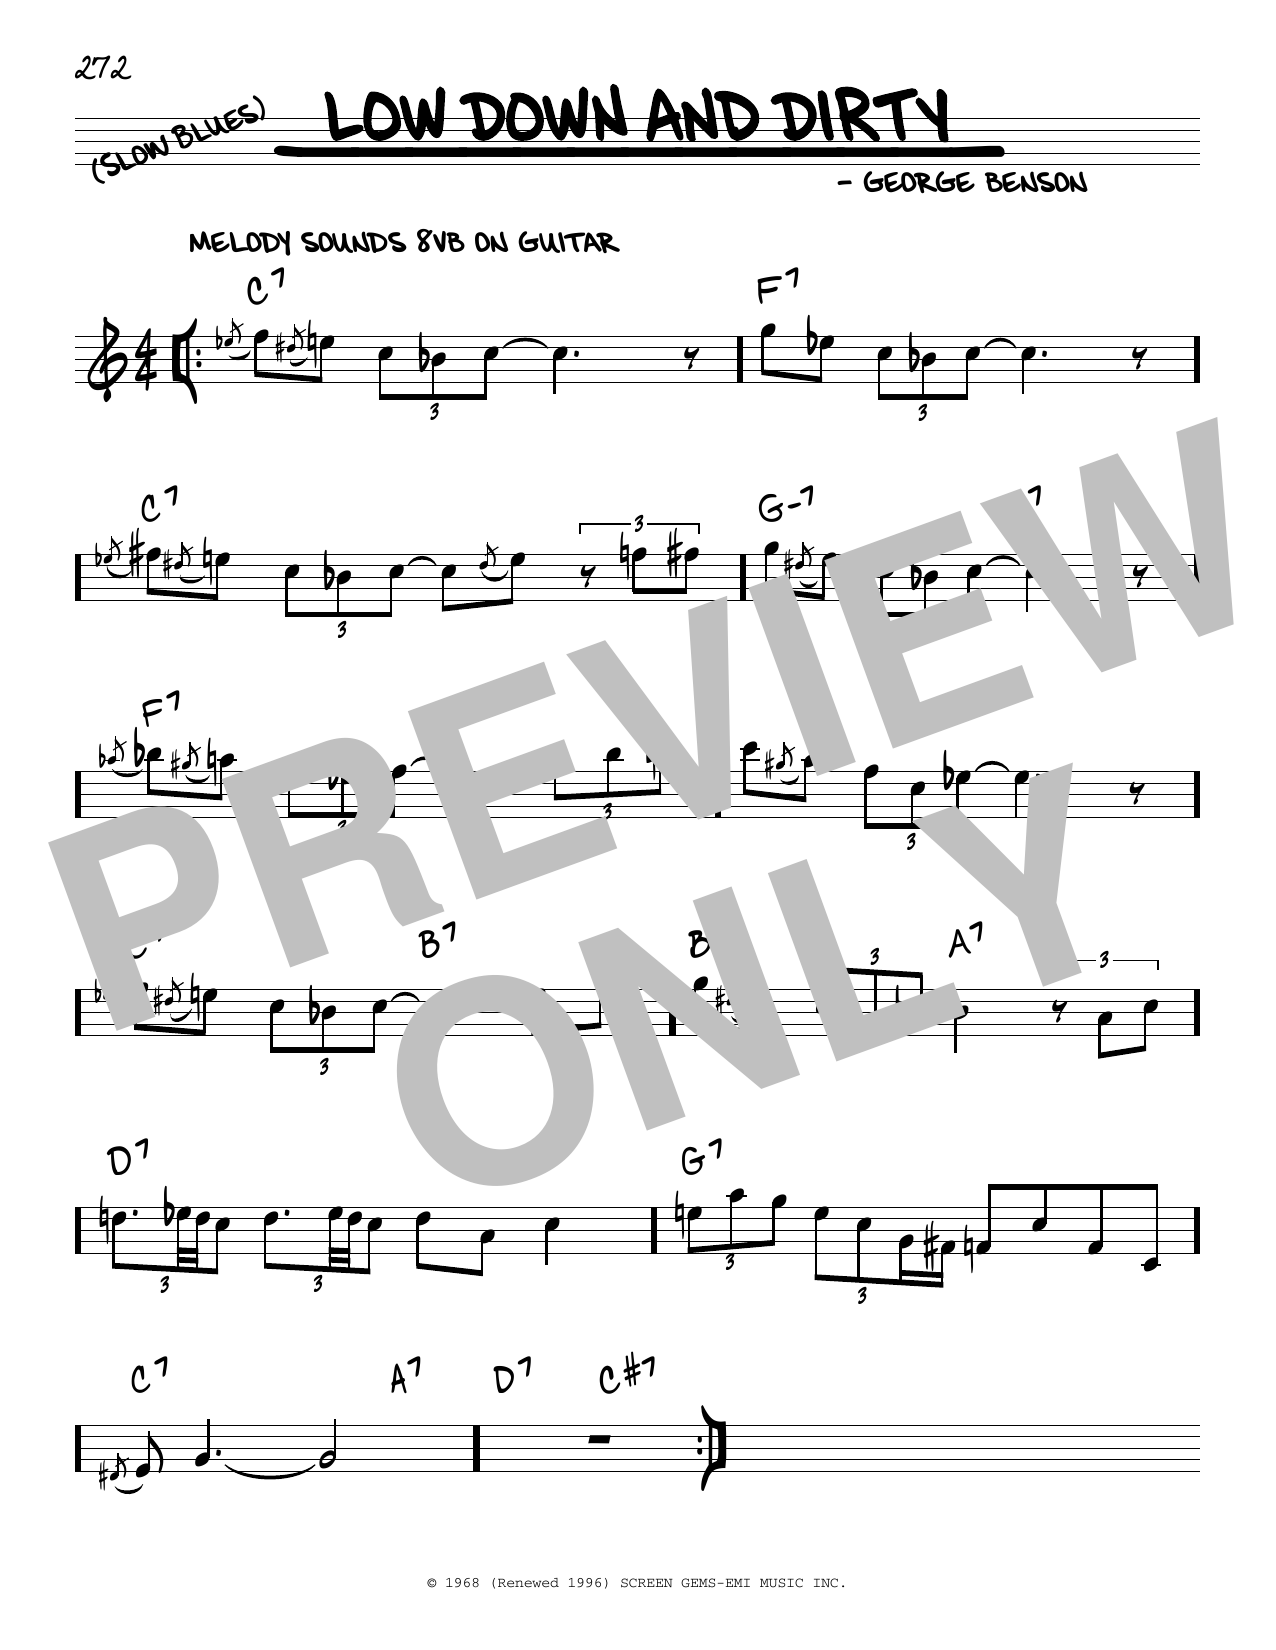 George Benson Low Down And Dirty sheet music notes and chords. Download Printable PDF.